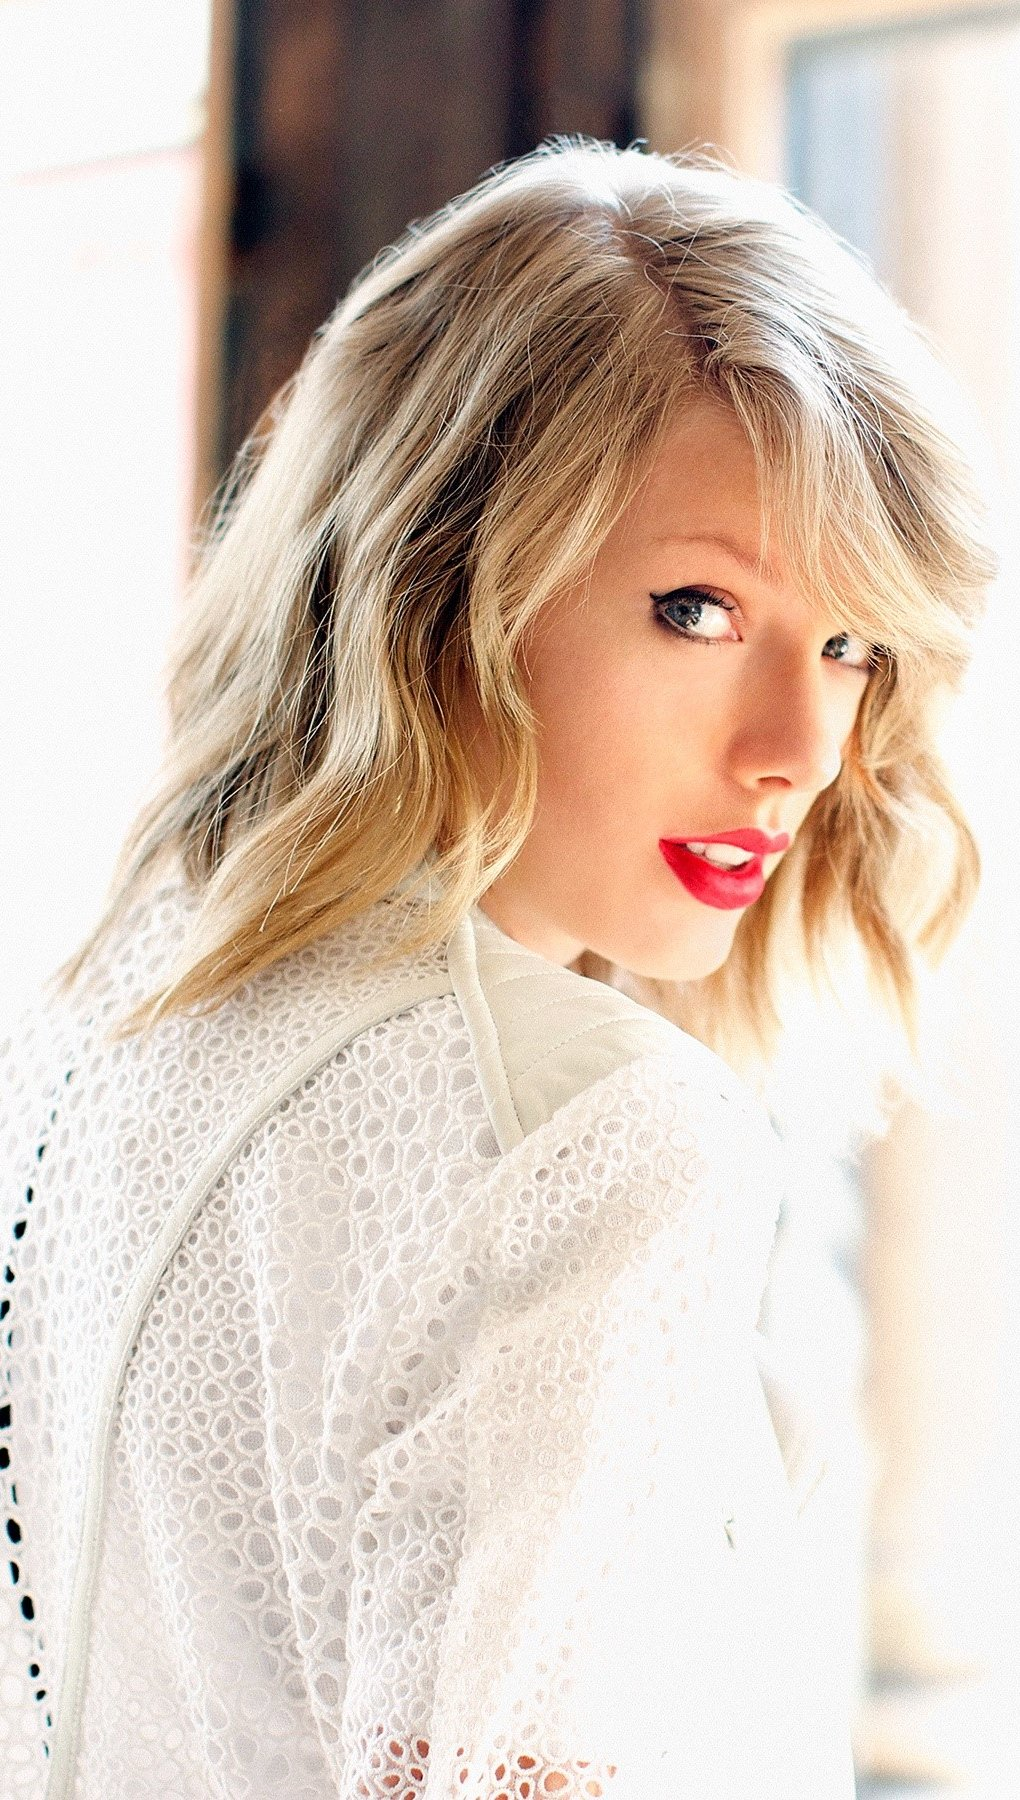 Wallpaper Taylor Swift in a room Vertical